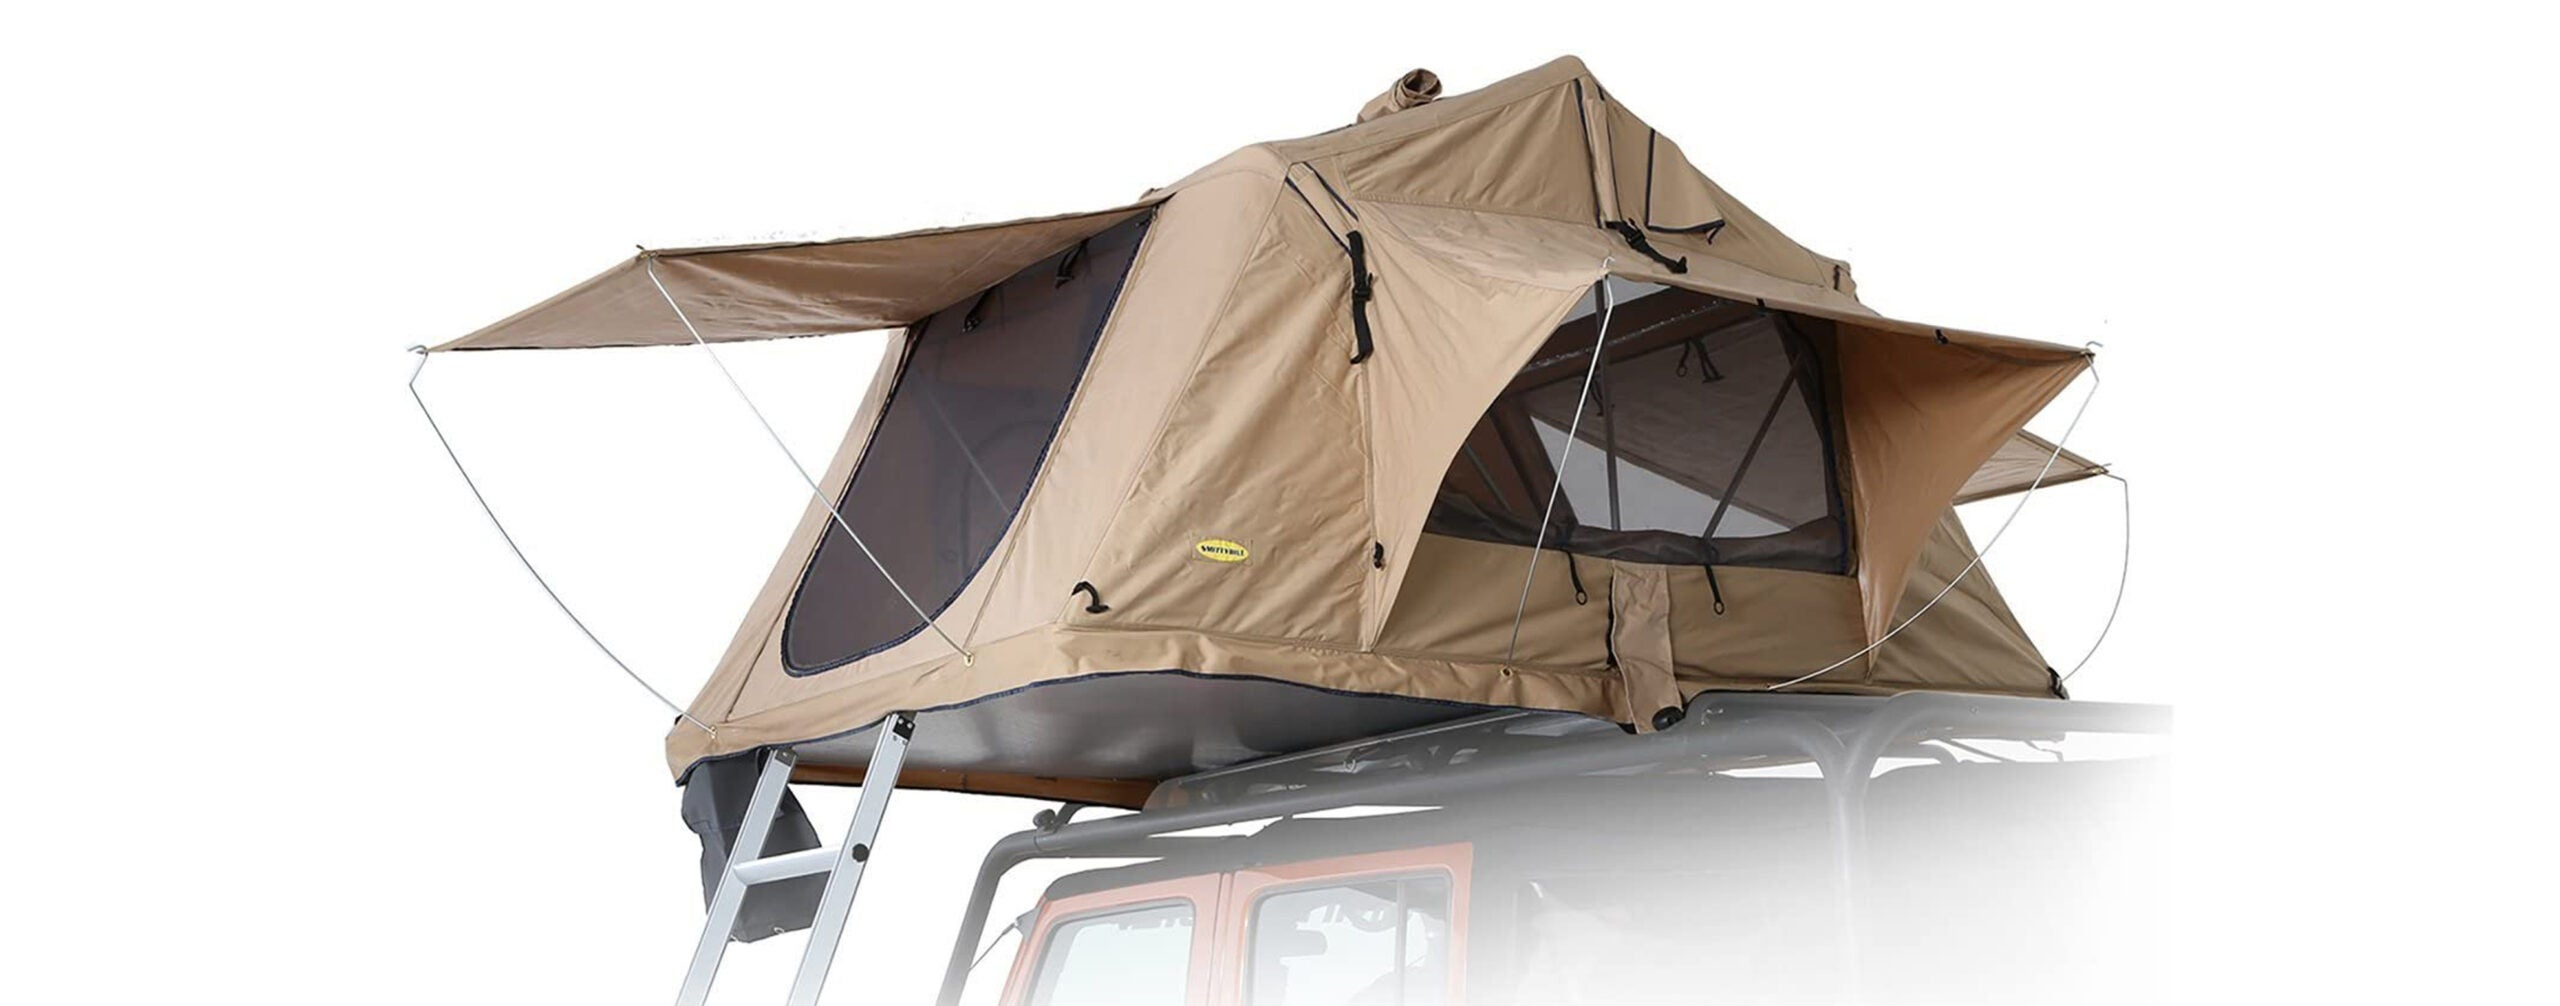 The Best Rooftop Tents (Review) in 2021